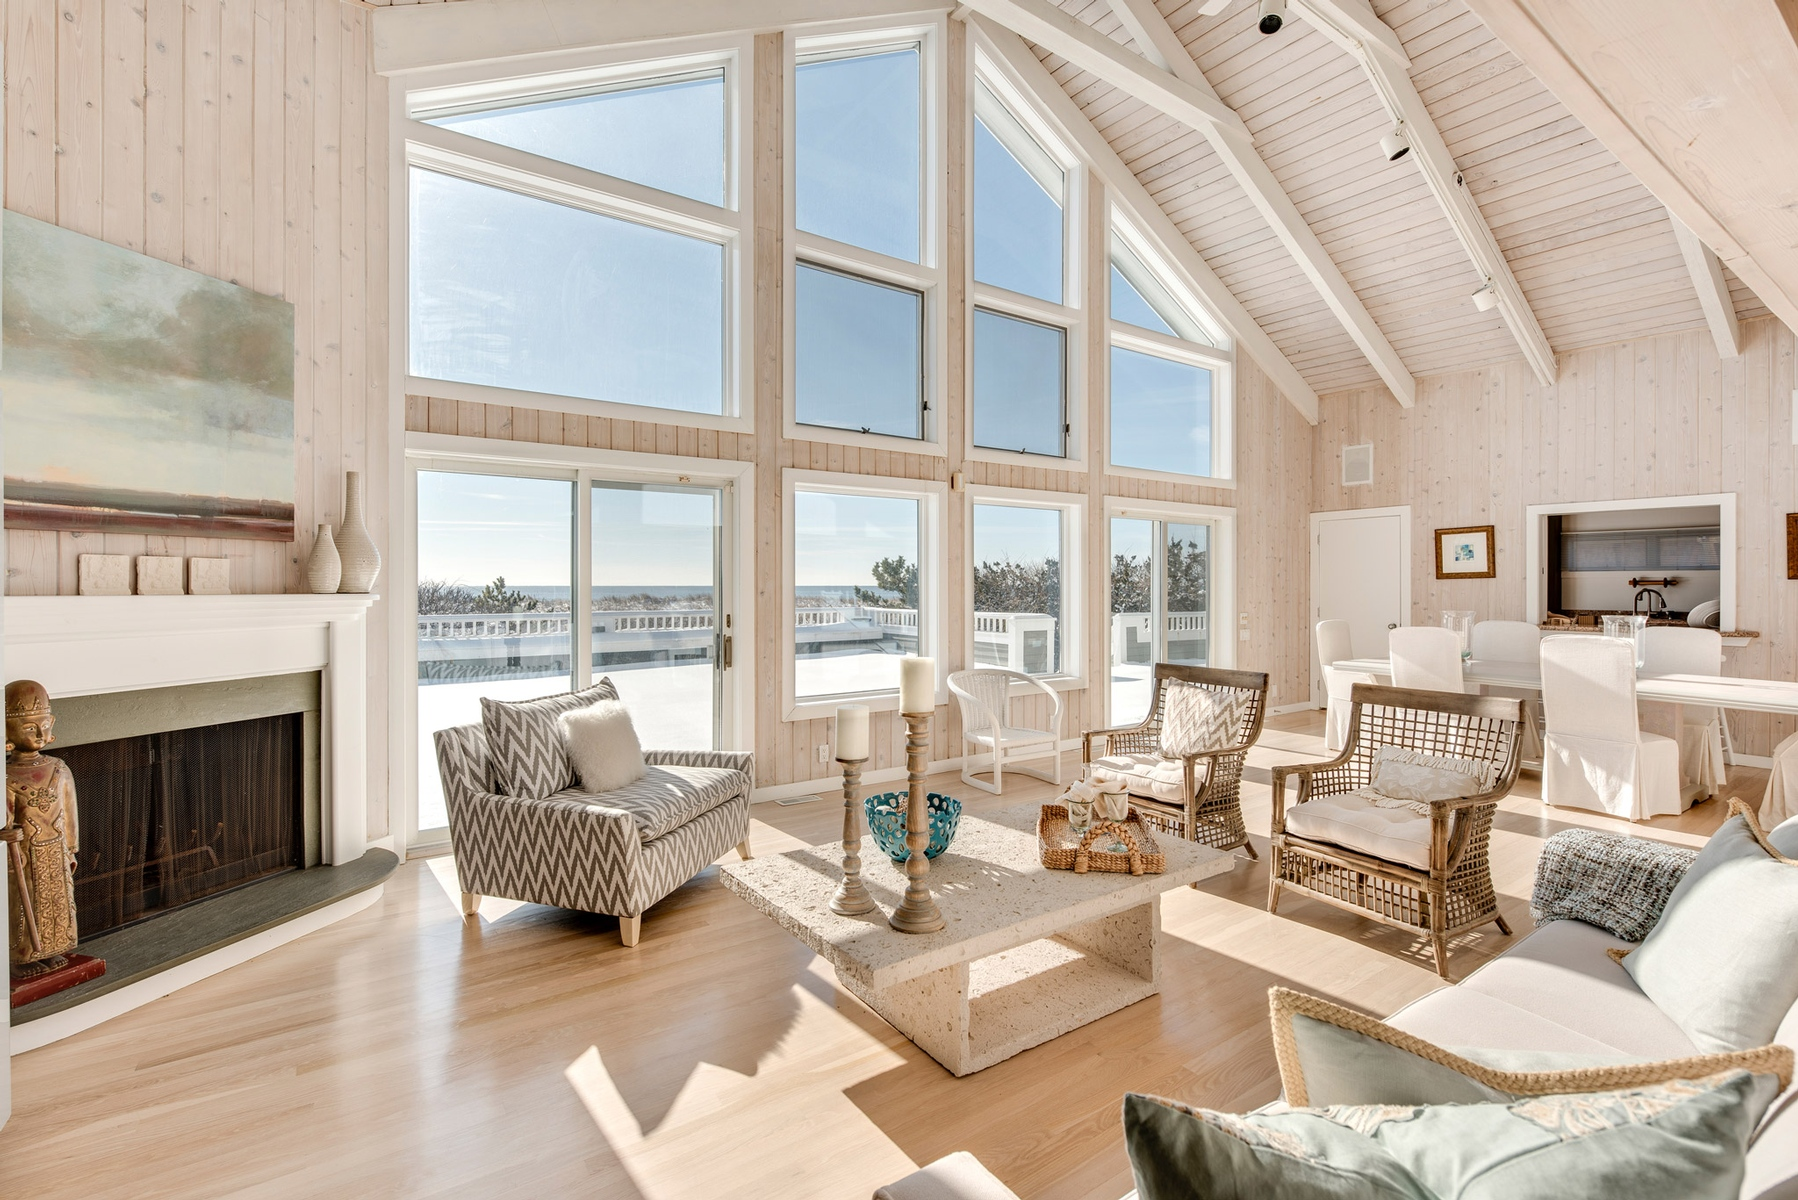 What $5M buys you in Westhampton right now